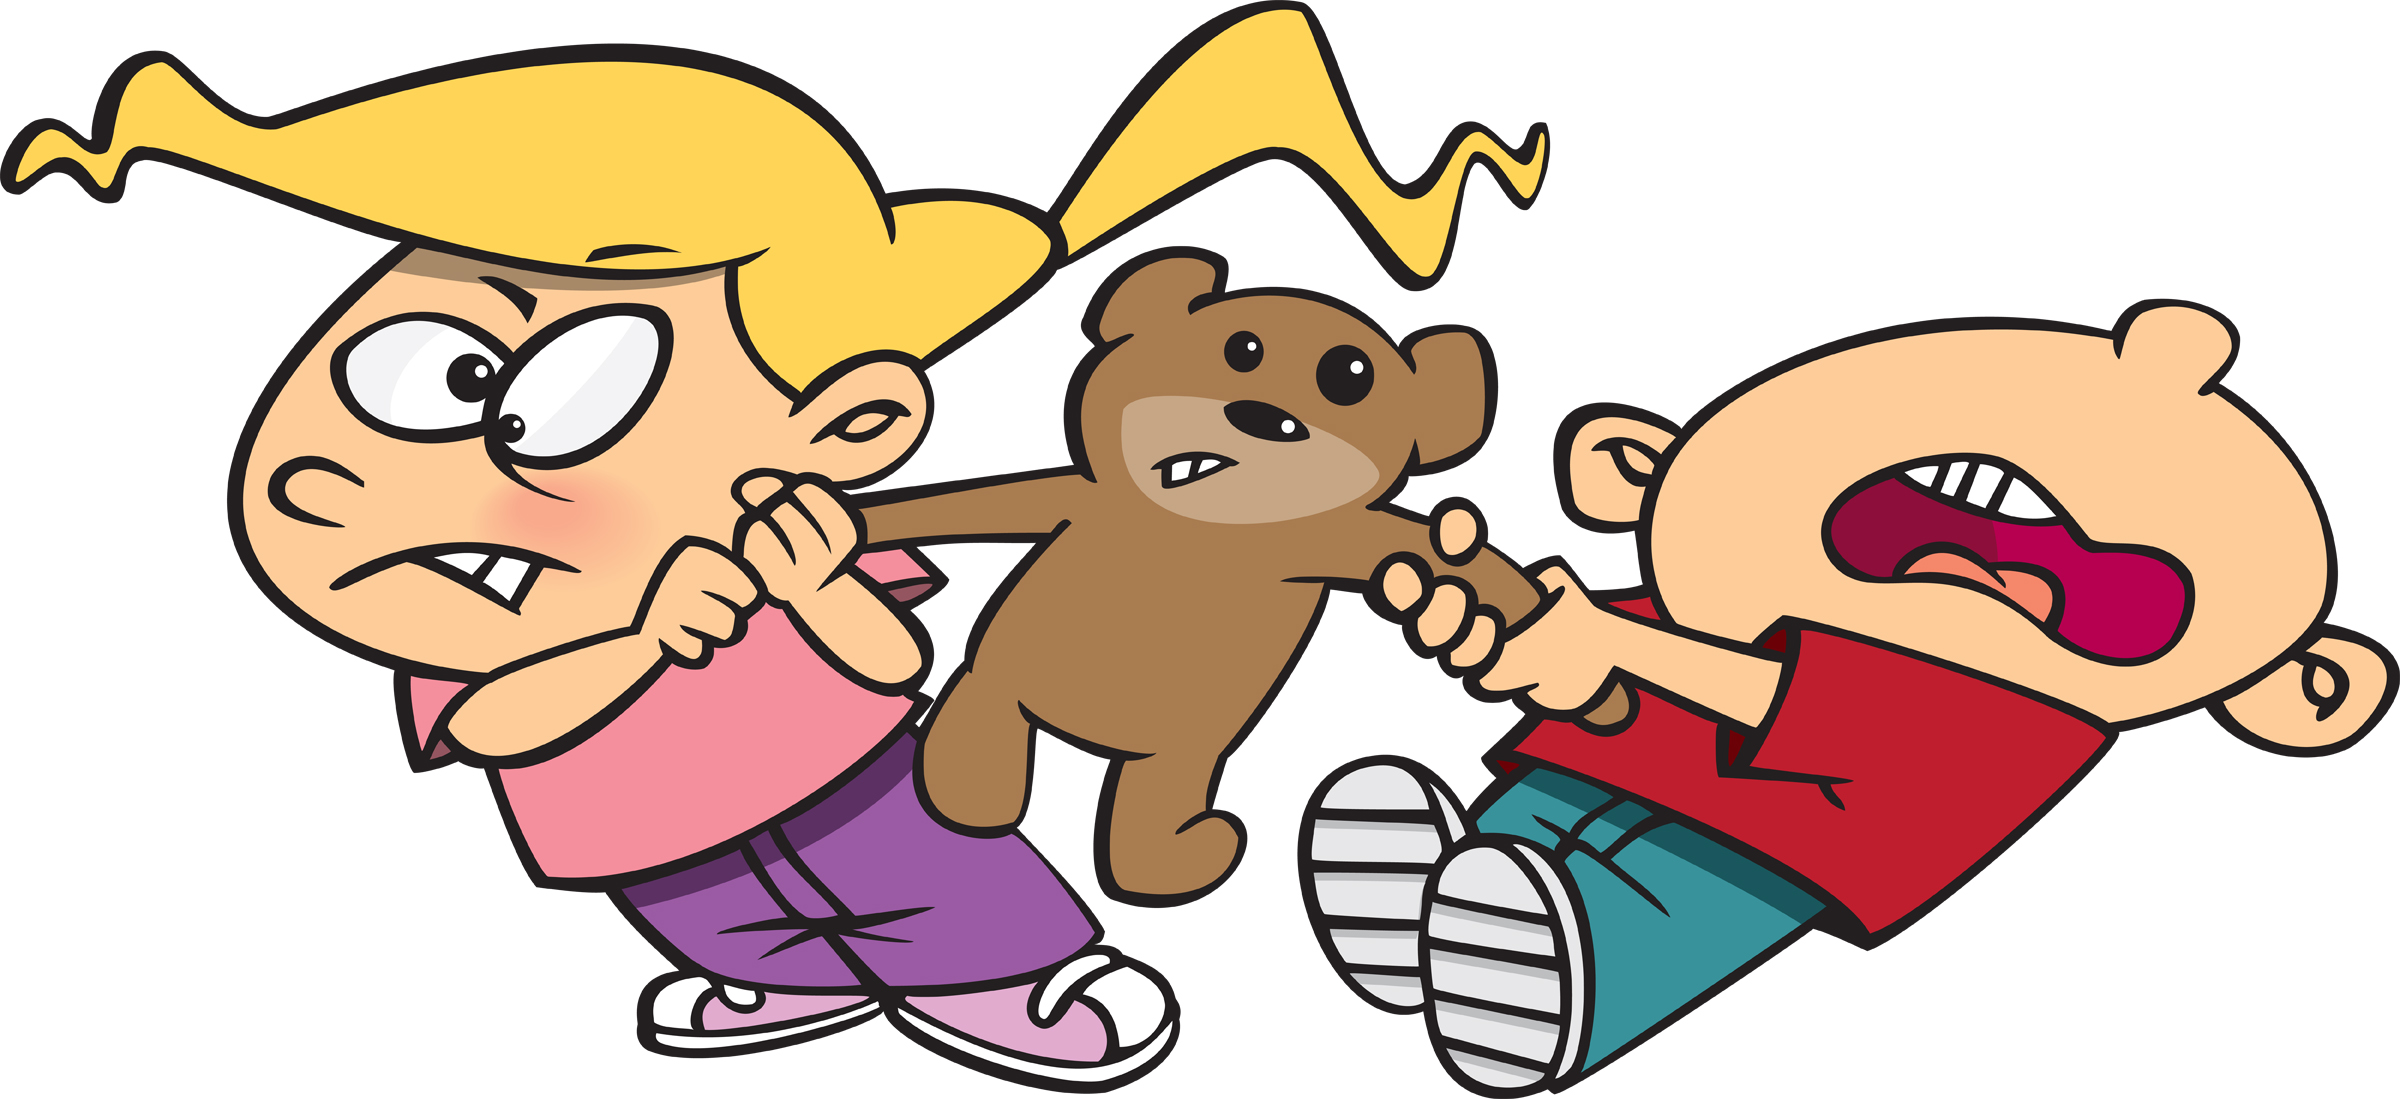 People Fighting Clipart - Clipart Kid